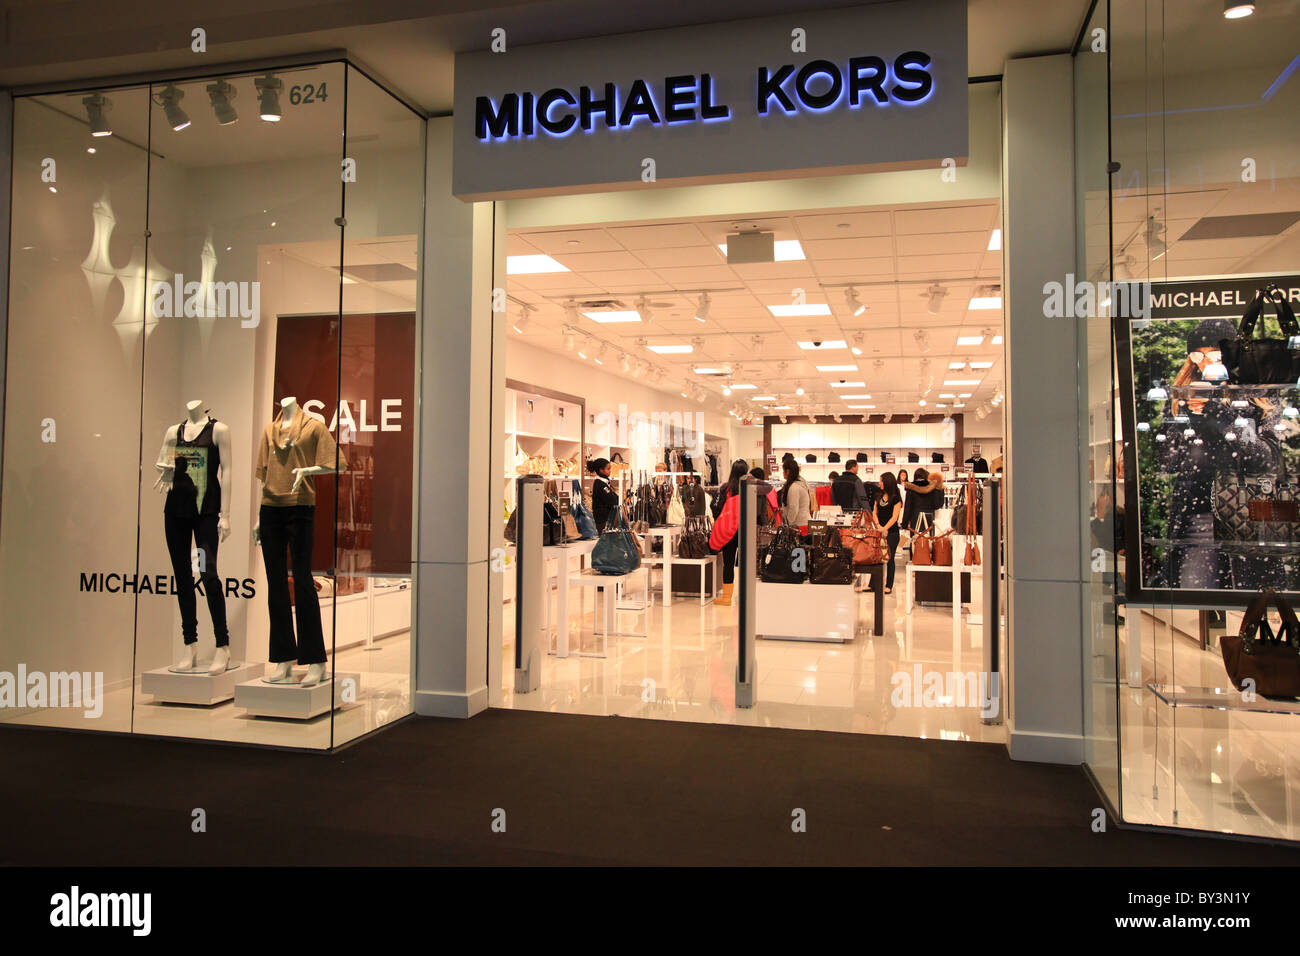 michael kors outlet store in vaughan mills mall in toronto canada stock photo 33888455 alamy. Black Bedroom Furniture Sets. Home Design Ideas